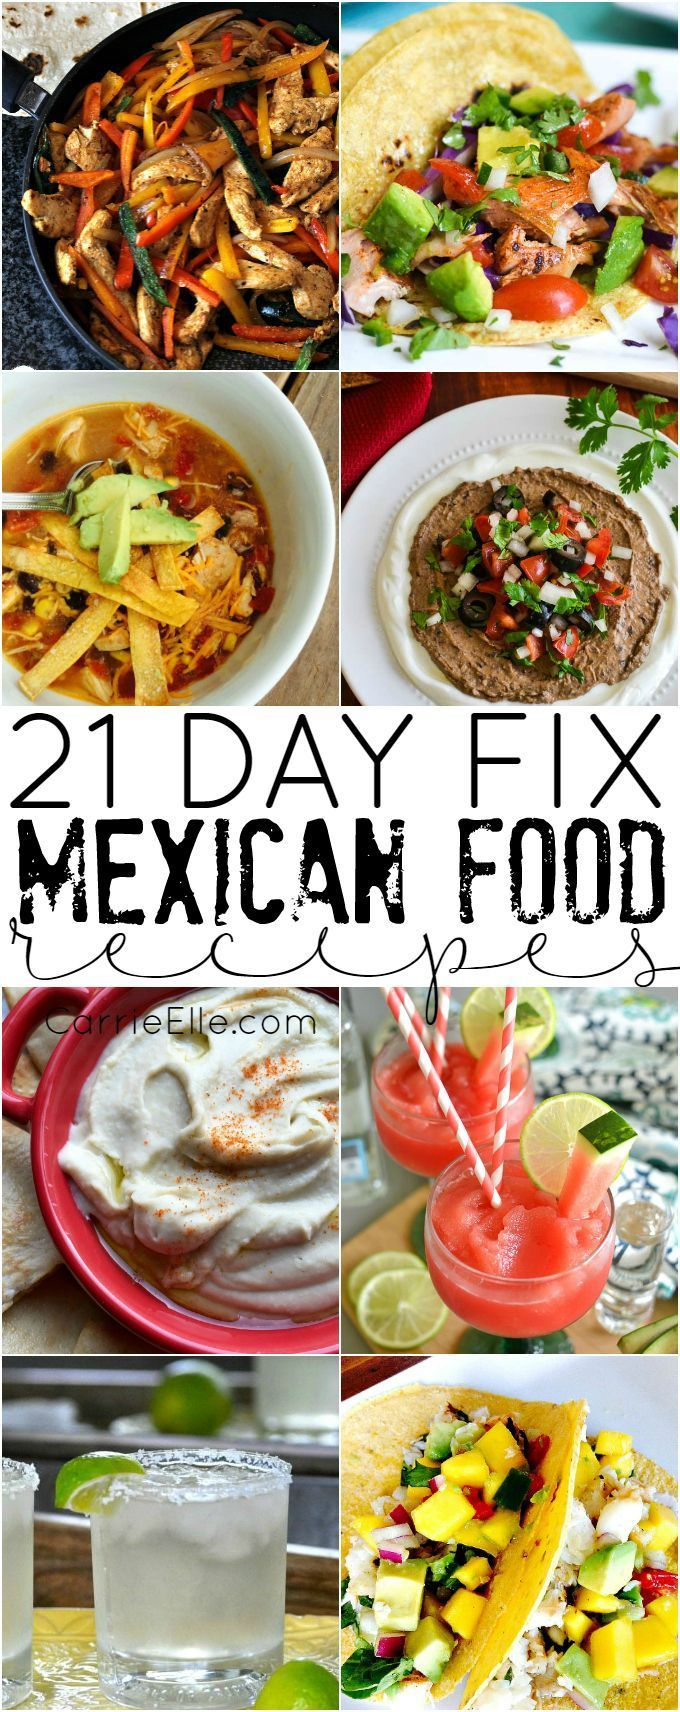 21 day fix mexican food recipes mxico 21 day fix mexican food recipes forumfinder Choice Image